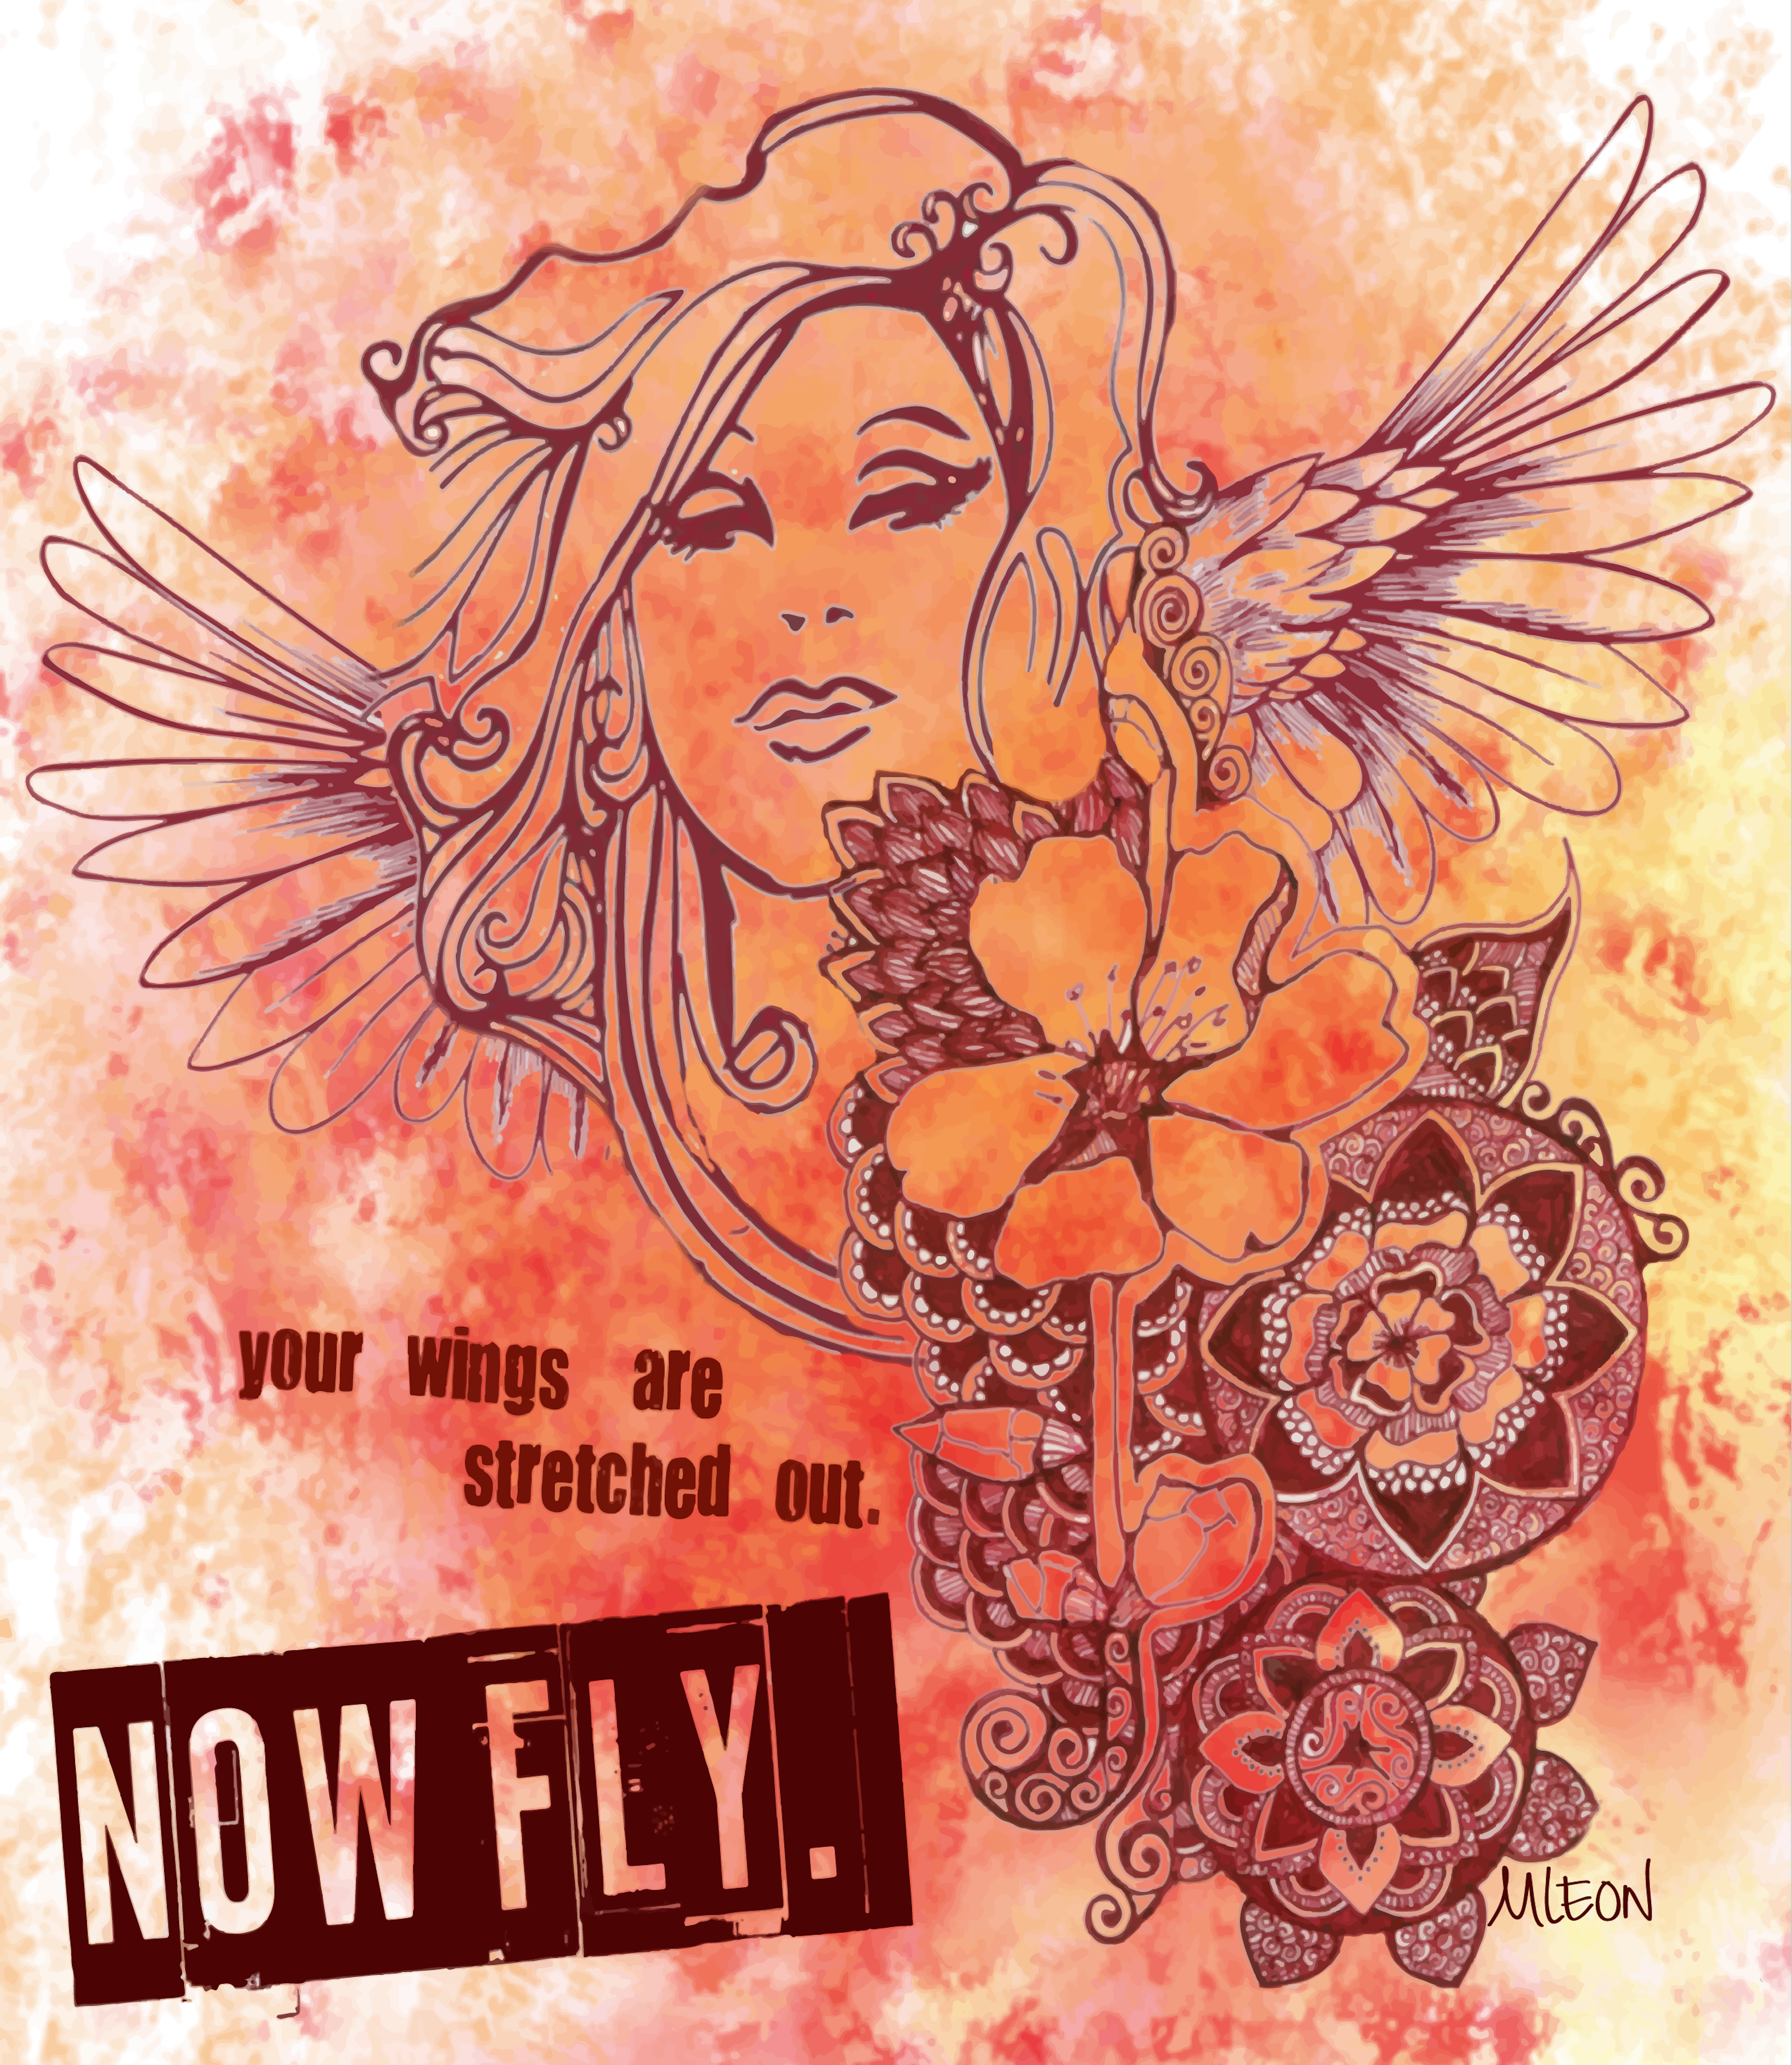 Now Fly